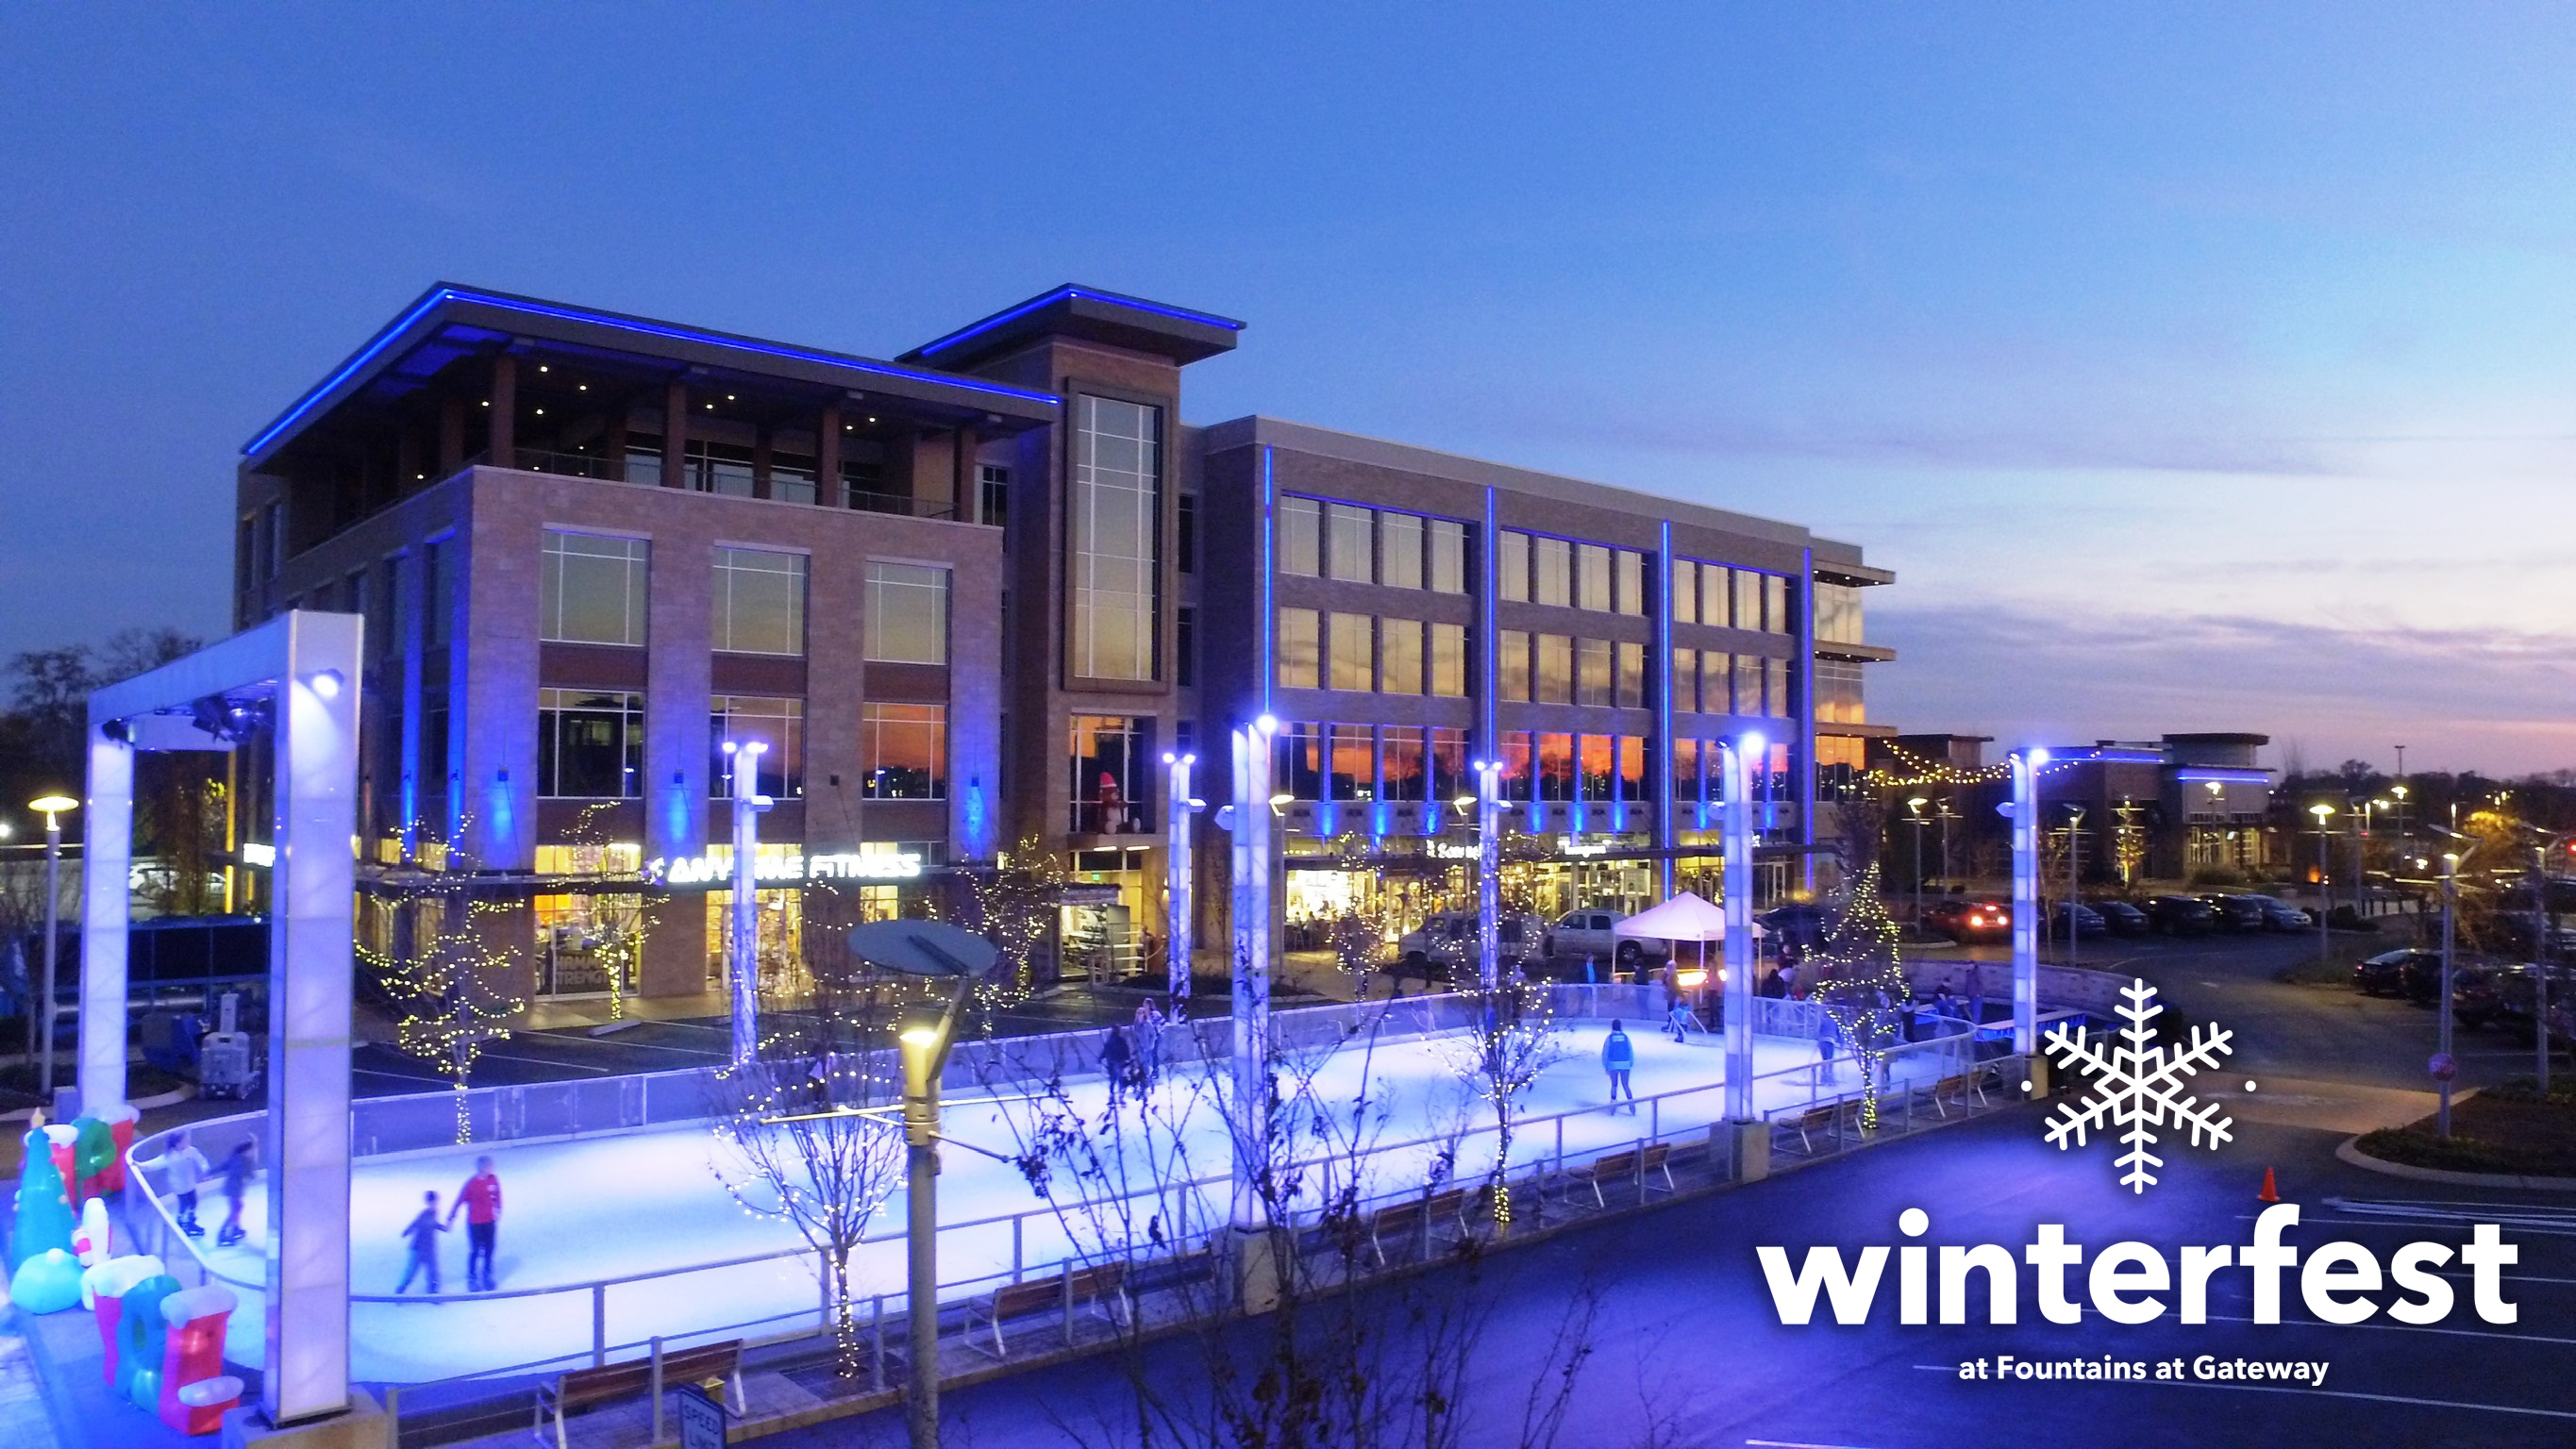 Winterfest at Fountains at Gateway  Outdoor Ice Rink Returns for the Holiday Season